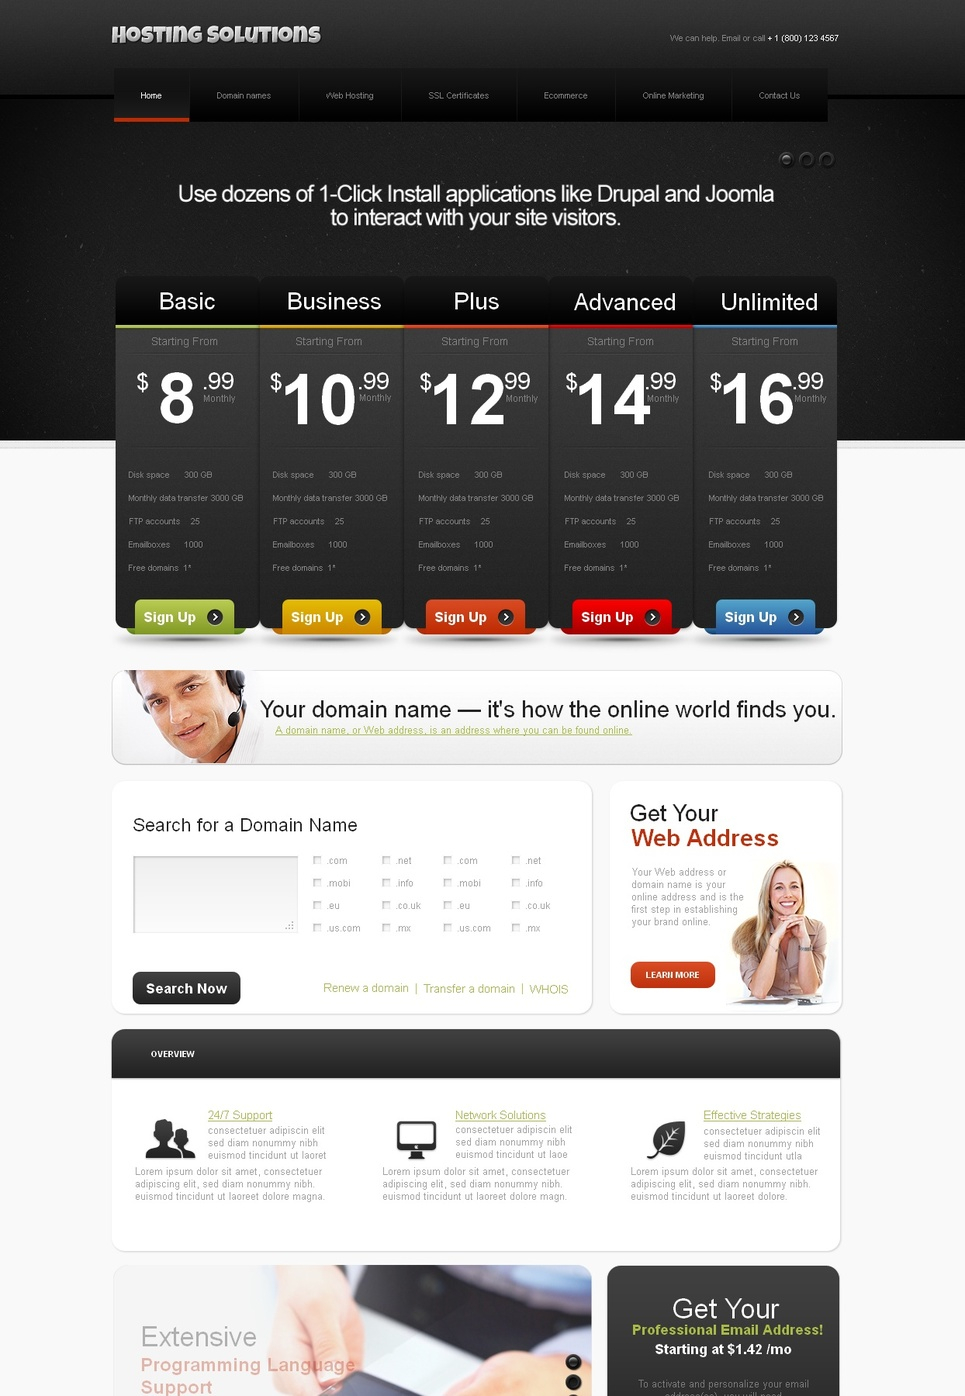 Black and White Website Template for Hosting Providers - image